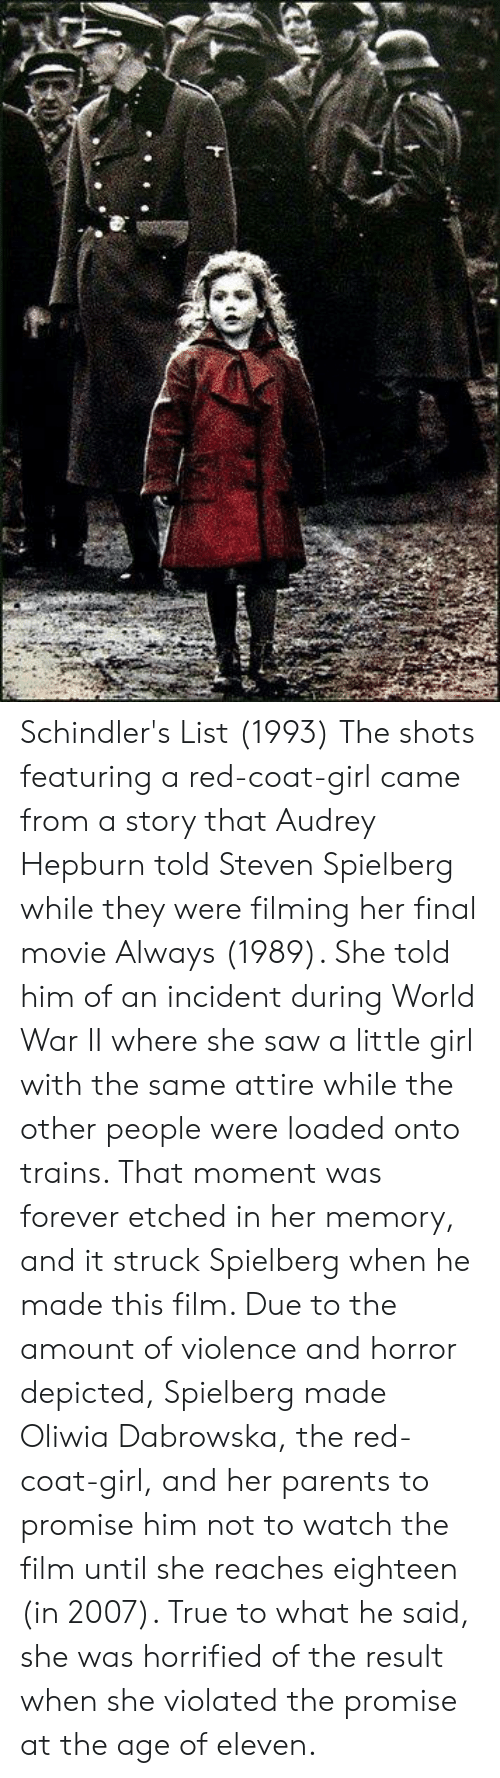 violated: Schindler's List (1993)  The shots featuring a red-coat-girl came from a story that Audrey Hepburn told Steven Spielberg while they were filming her final movie Always (1989). She told him of an incident during World War II where she saw a little girl with the same attire while the other people were loaded onto trains. That moment was forever etched in her memory, and it struck Spielberg when he made this film. Due to the amount of violence and horror depicted, Spielberg made Oliwia Dabrowska, the red-coat-girl, and her parents to promise him not to watch the film until she reaches eighteen (in 2007). True to what he said, she was horrified of the result when she violated the promise at the age of eleven.